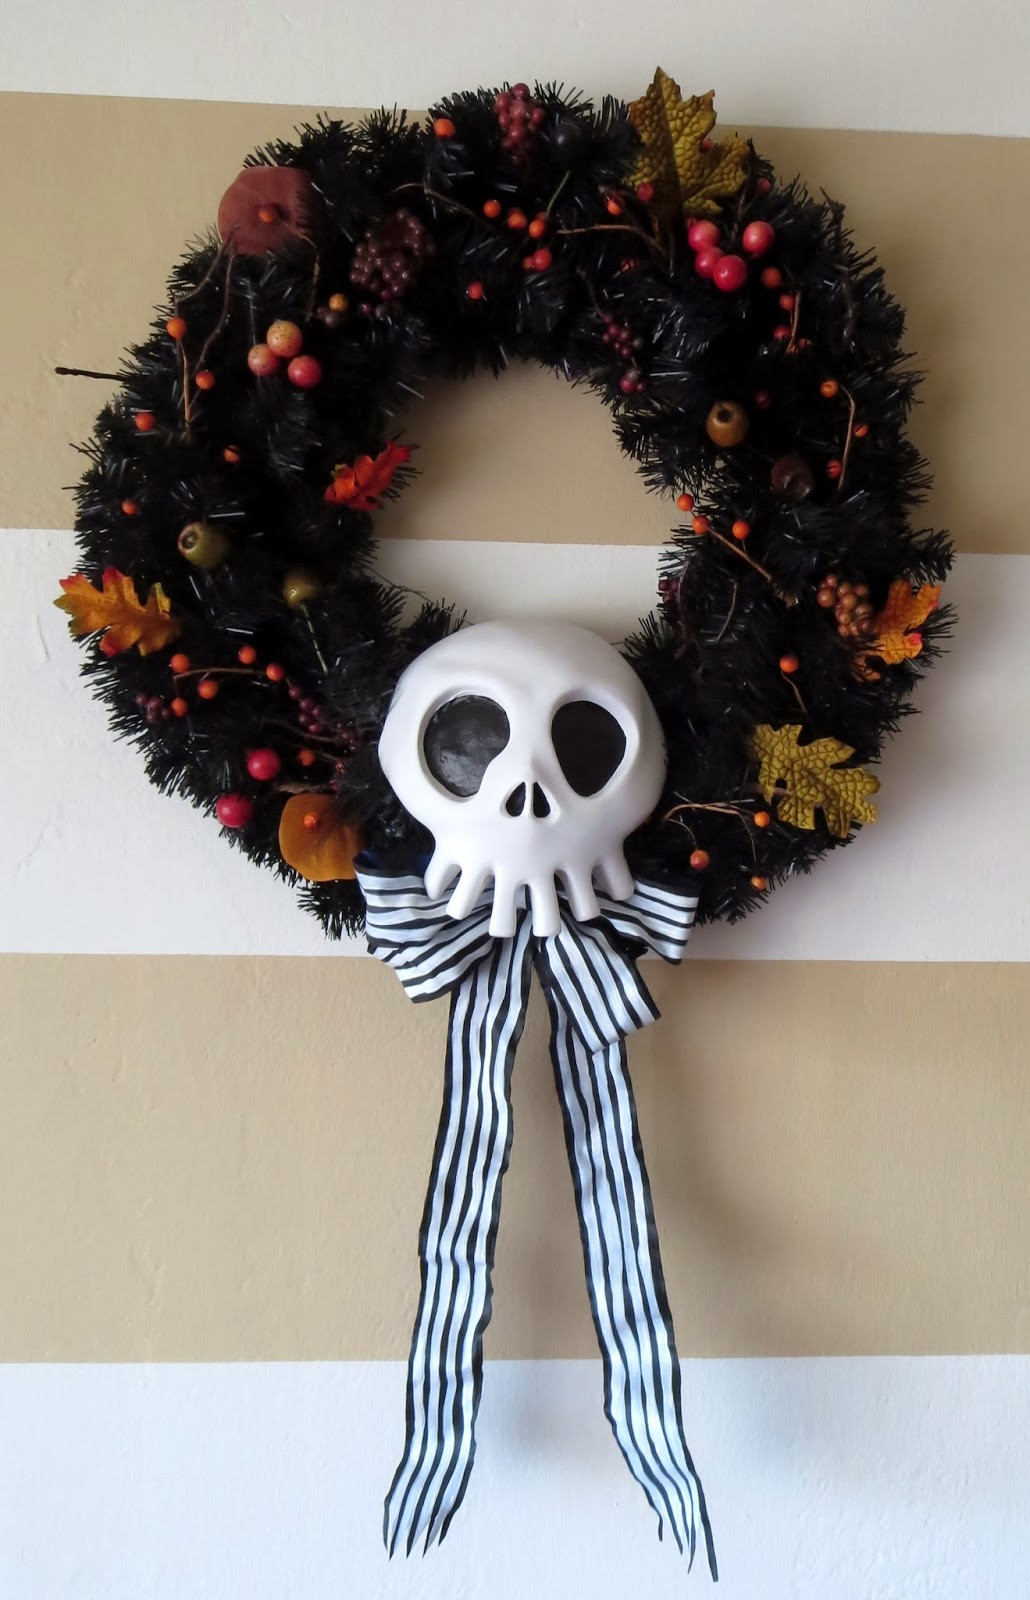 Best ideas about DIY Nightmare Before Christmas . Save or Pin DIY Nightmare Before Christmas Halloween Props Now.